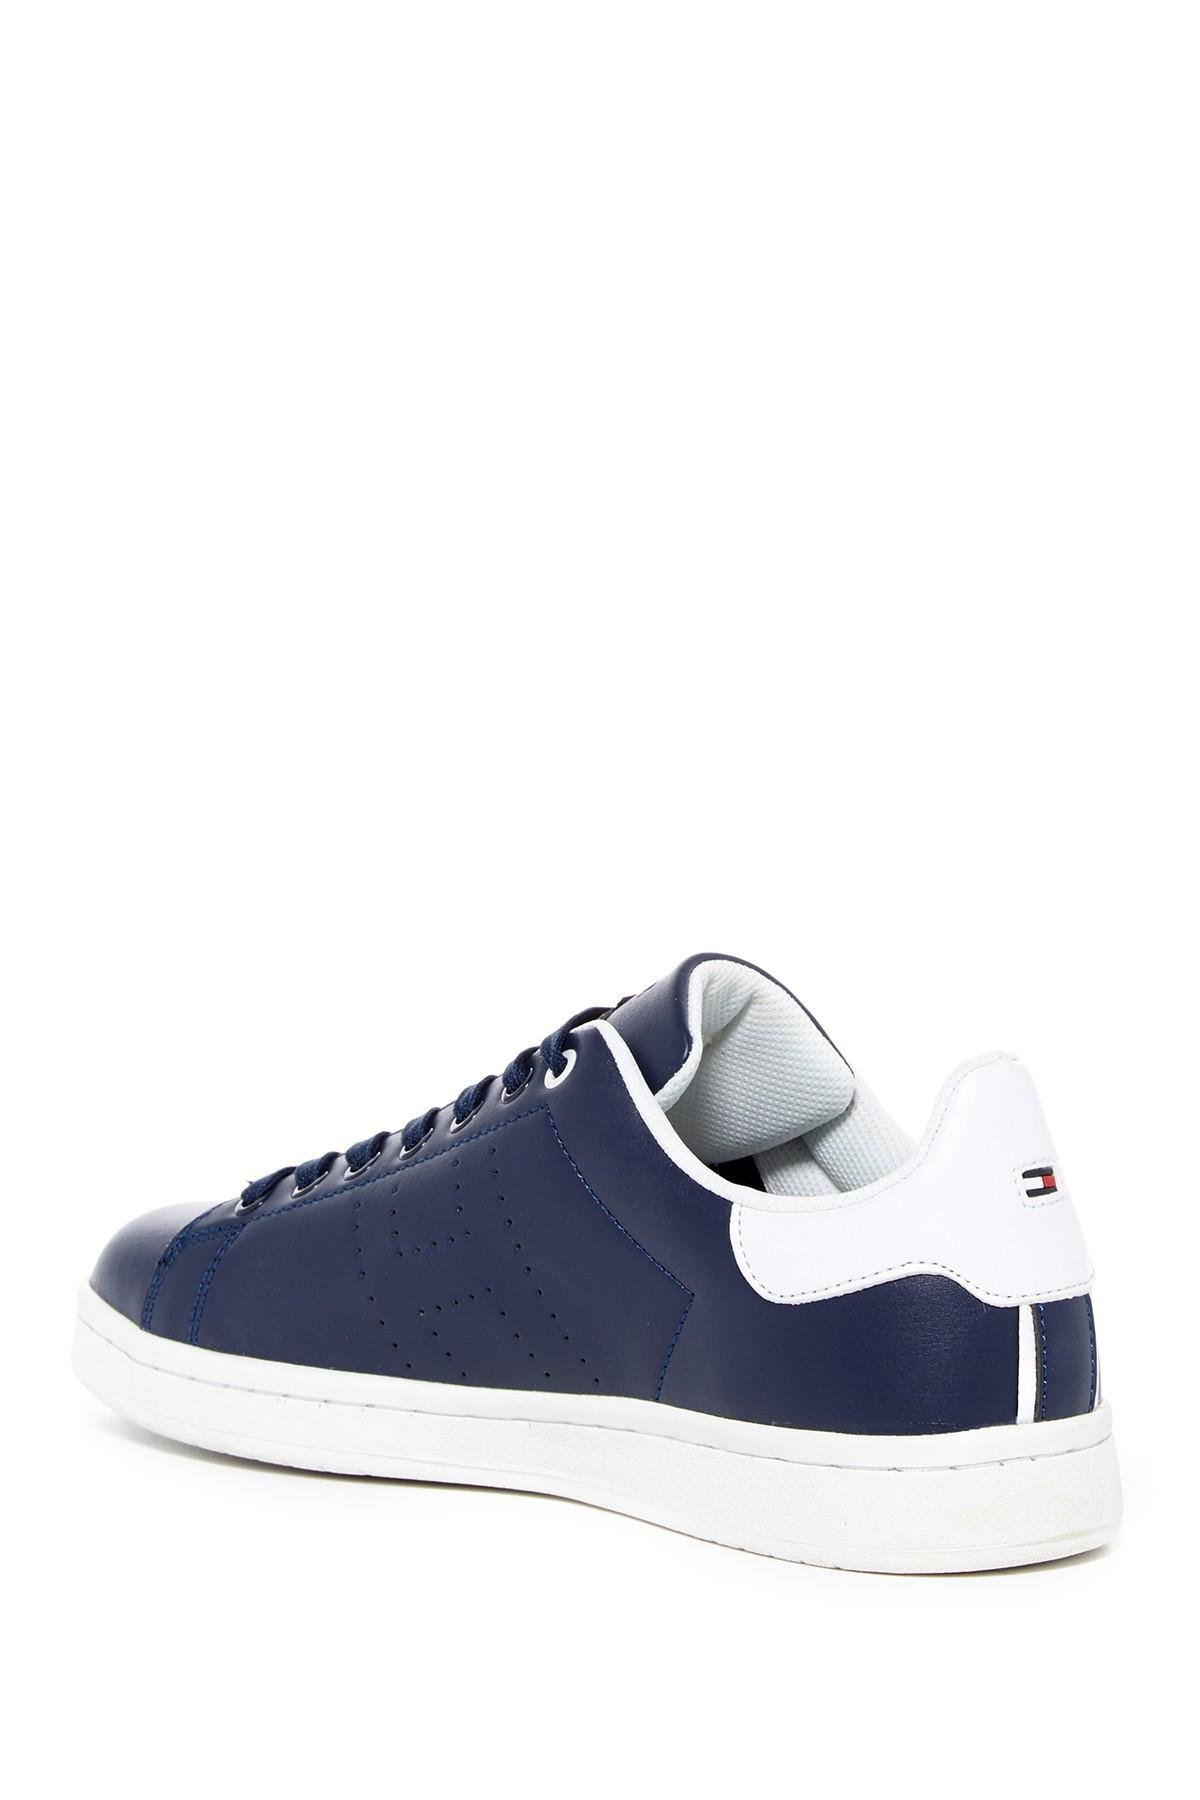 742c14400177ac Lyst - Tommy Hilfiger Liston Sneaker in Blue for Men